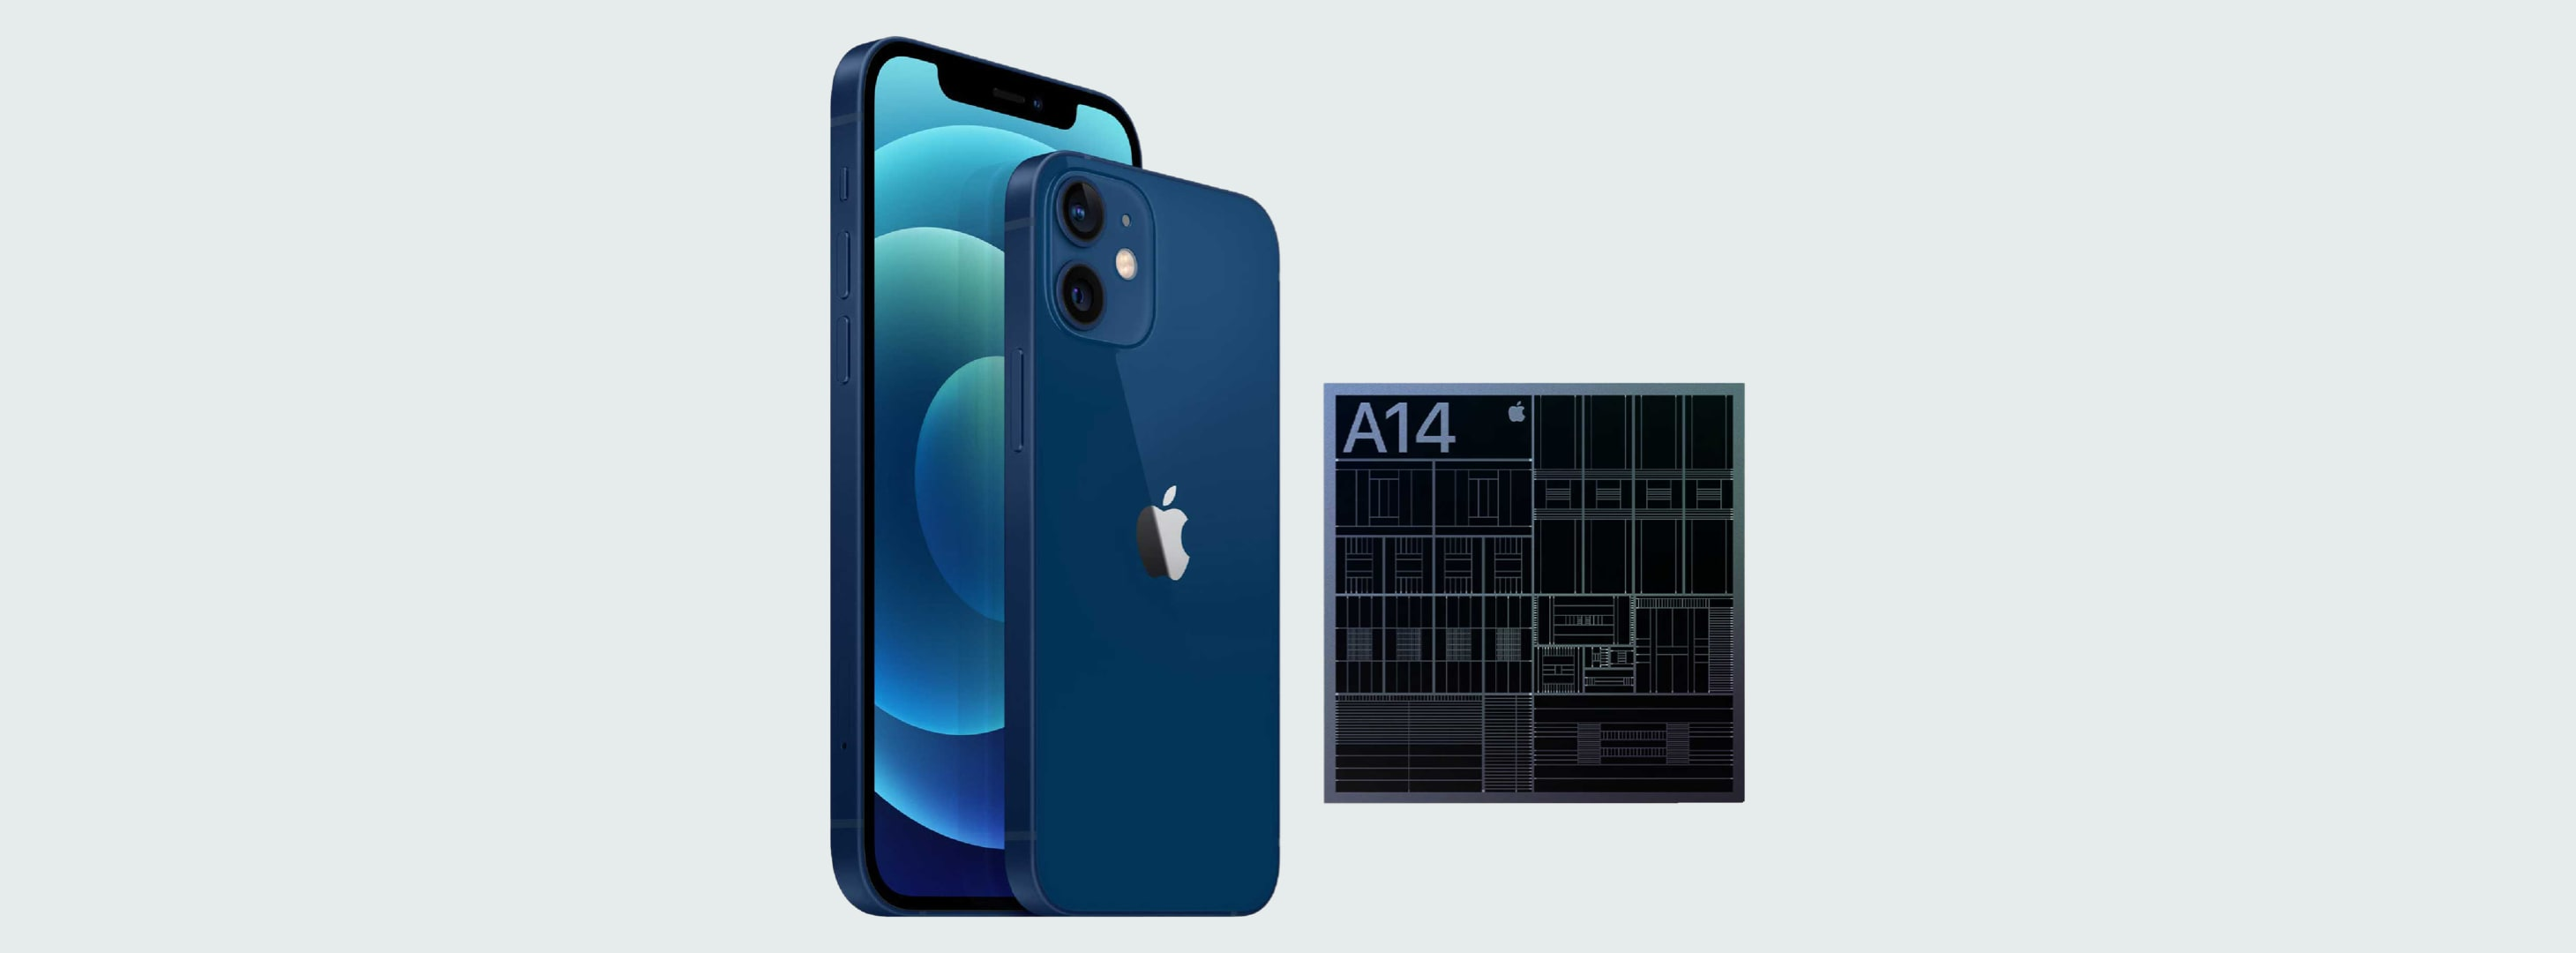 allapplenews-iphone-12-and-iphone-12-mini-processing-chip